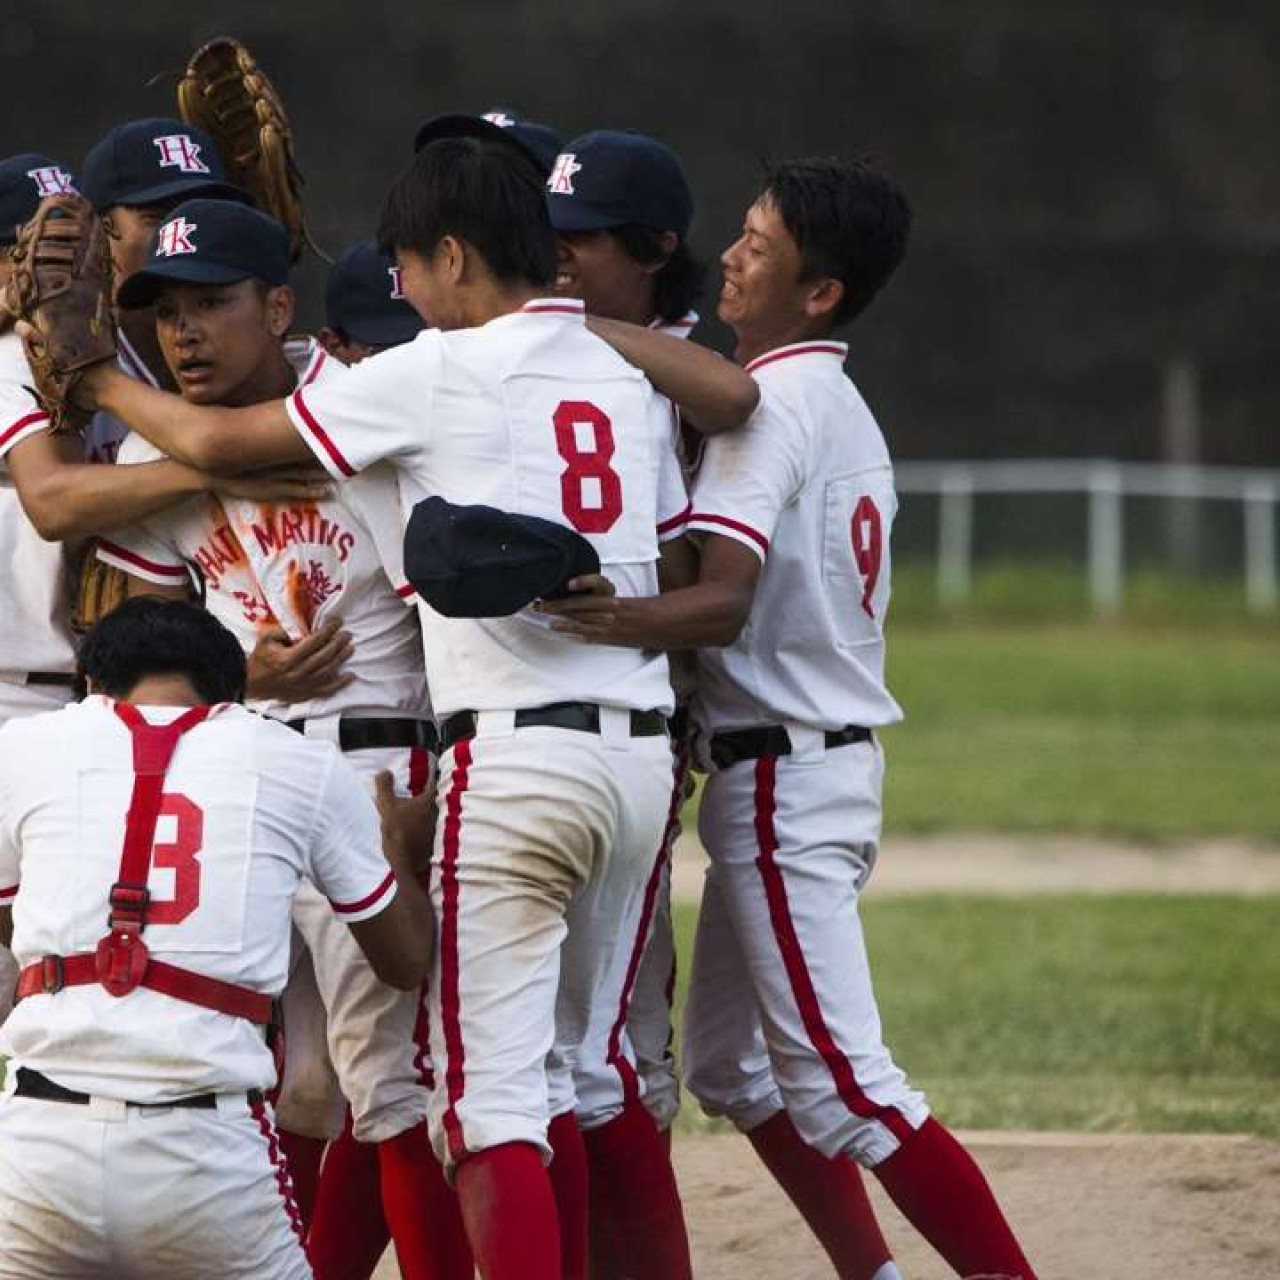 Film review: Weeds on Fire – historic Hong Kong baseball team